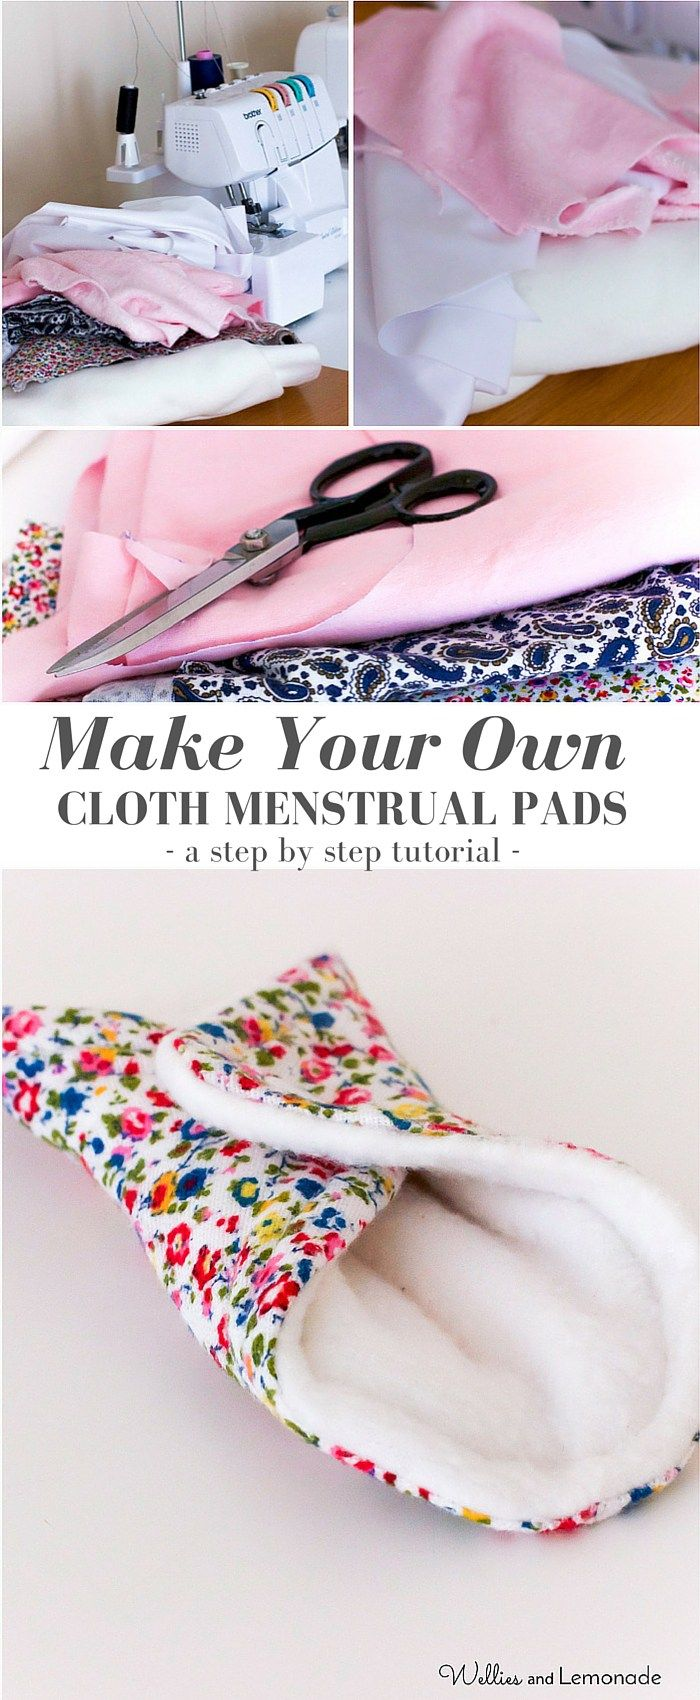 Want to give it a try and make your own pads? Try this step by step tutorial with the exact same  templates that I use and sold them successfully online. find them over at http://www.welliesandlemonade.com/make-cloth-menstrual-pads-tutorial